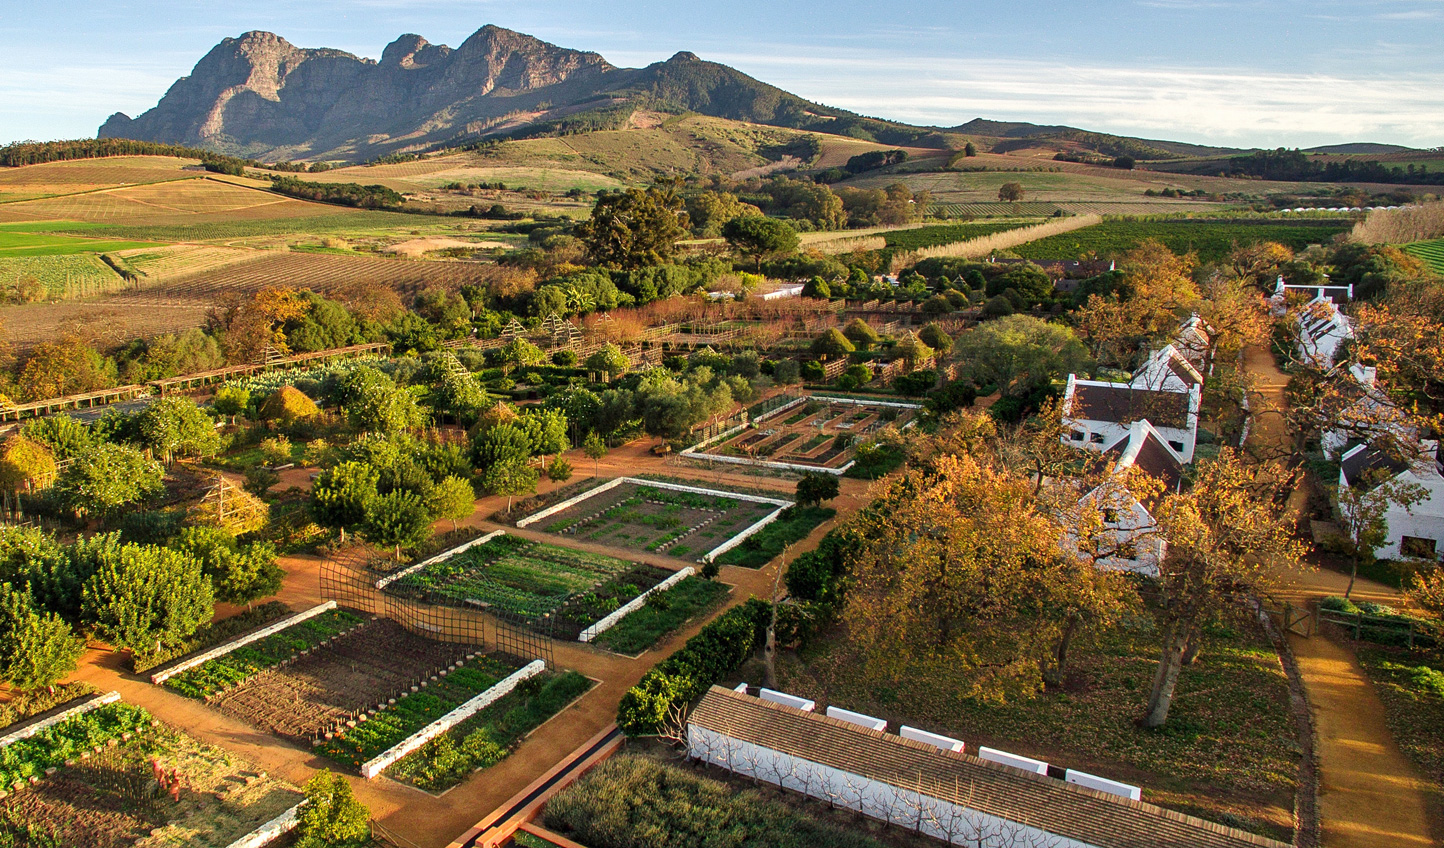 Stroll through the farms at Babylonstoren for a true farm-to-fork experience